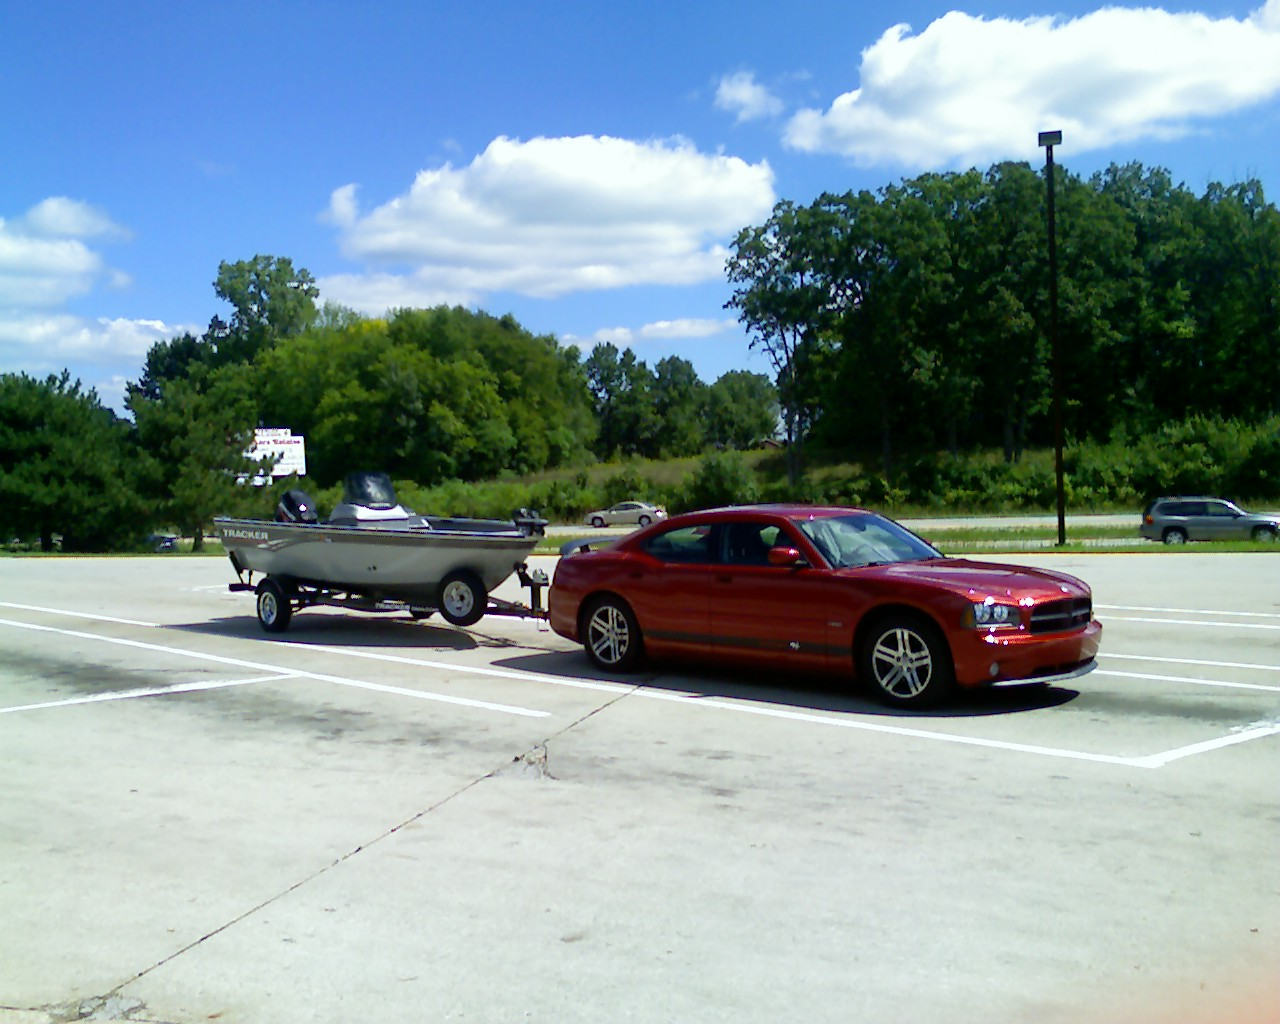 hidden hitch ball assembly, which fits into a downward-facing hitch ...